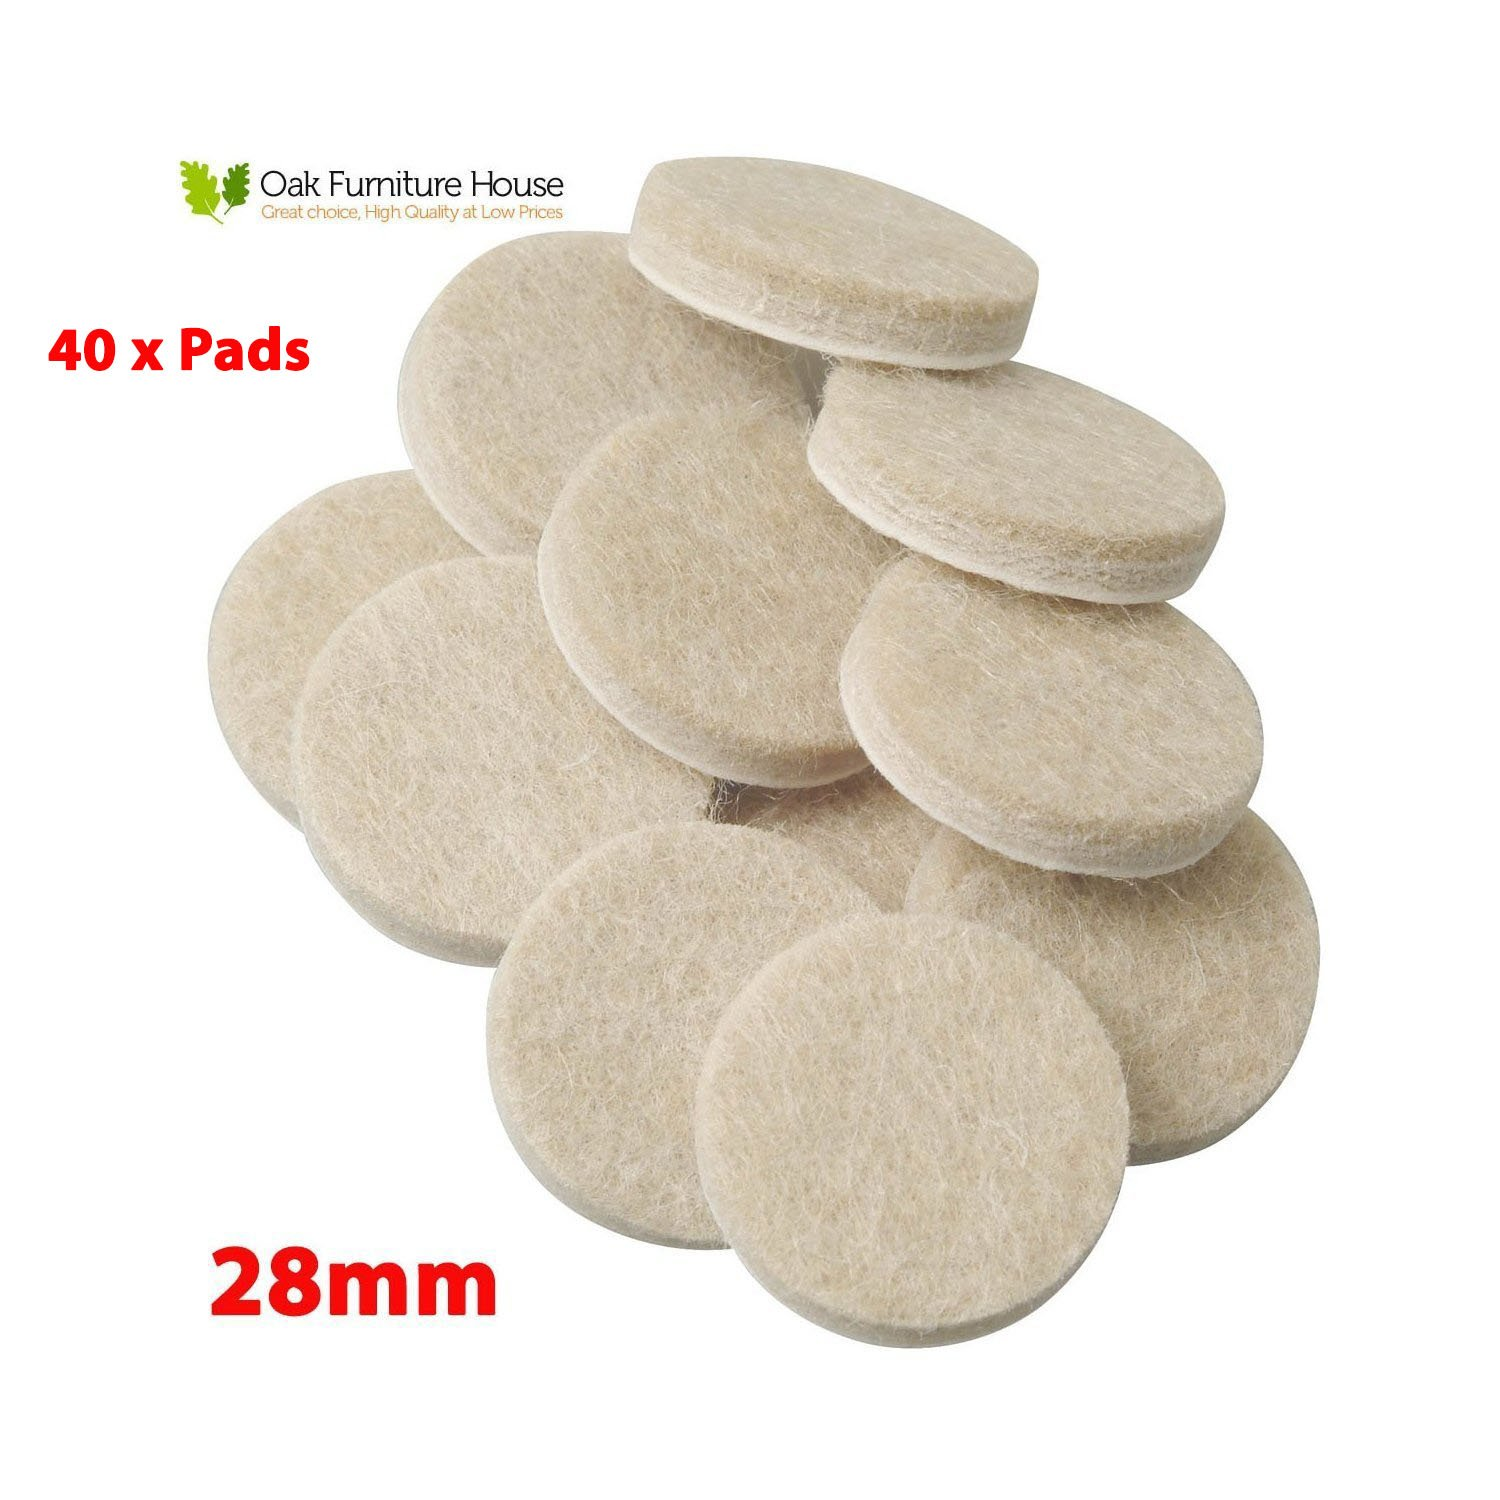 40 Oak Furniture Self Adhesive Felt Pads Wood Floor Protectors (28mm)